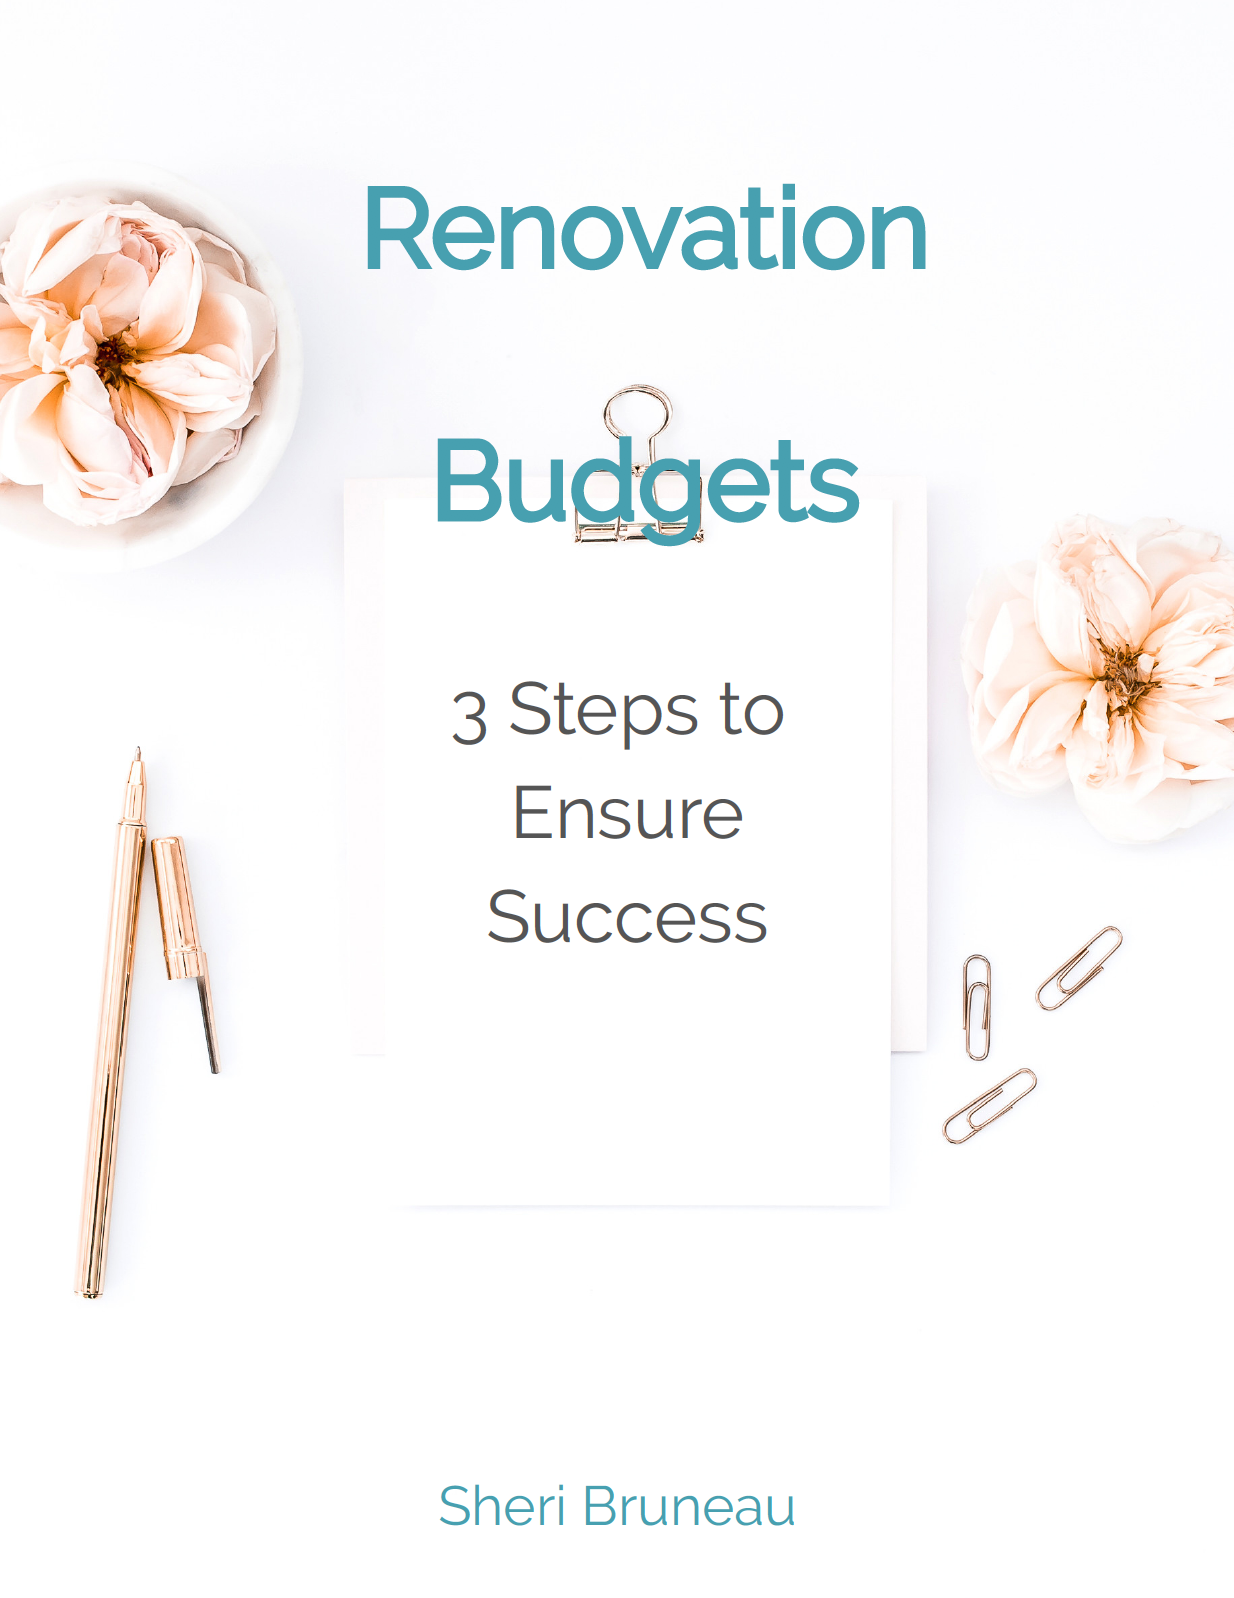 Renovation Budgets cover page.png